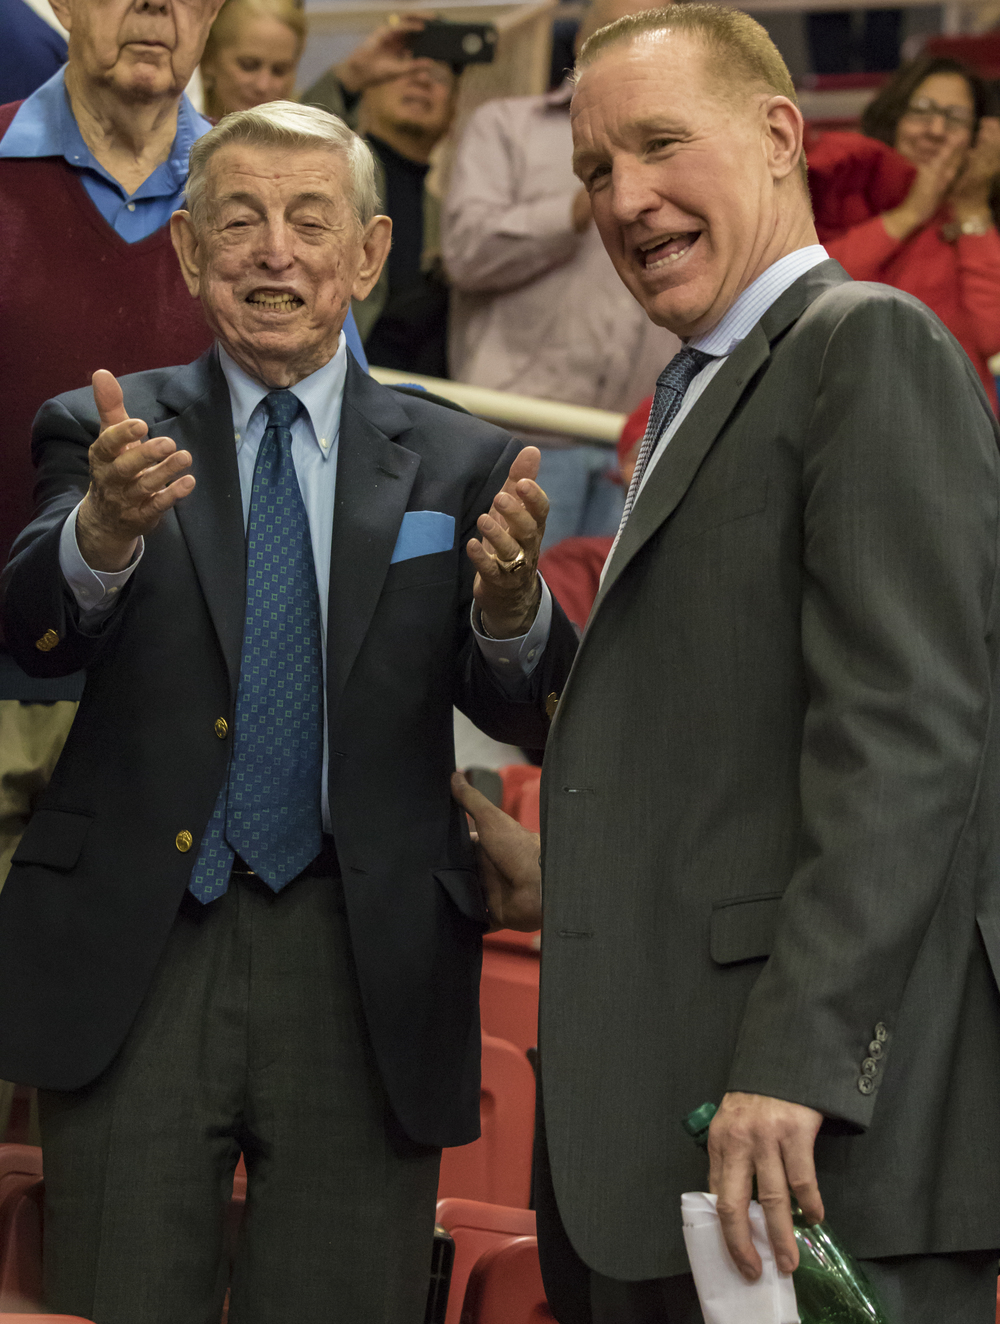 Former St. John's head coach Lou Carnesecca & current head coach Chris Mullin